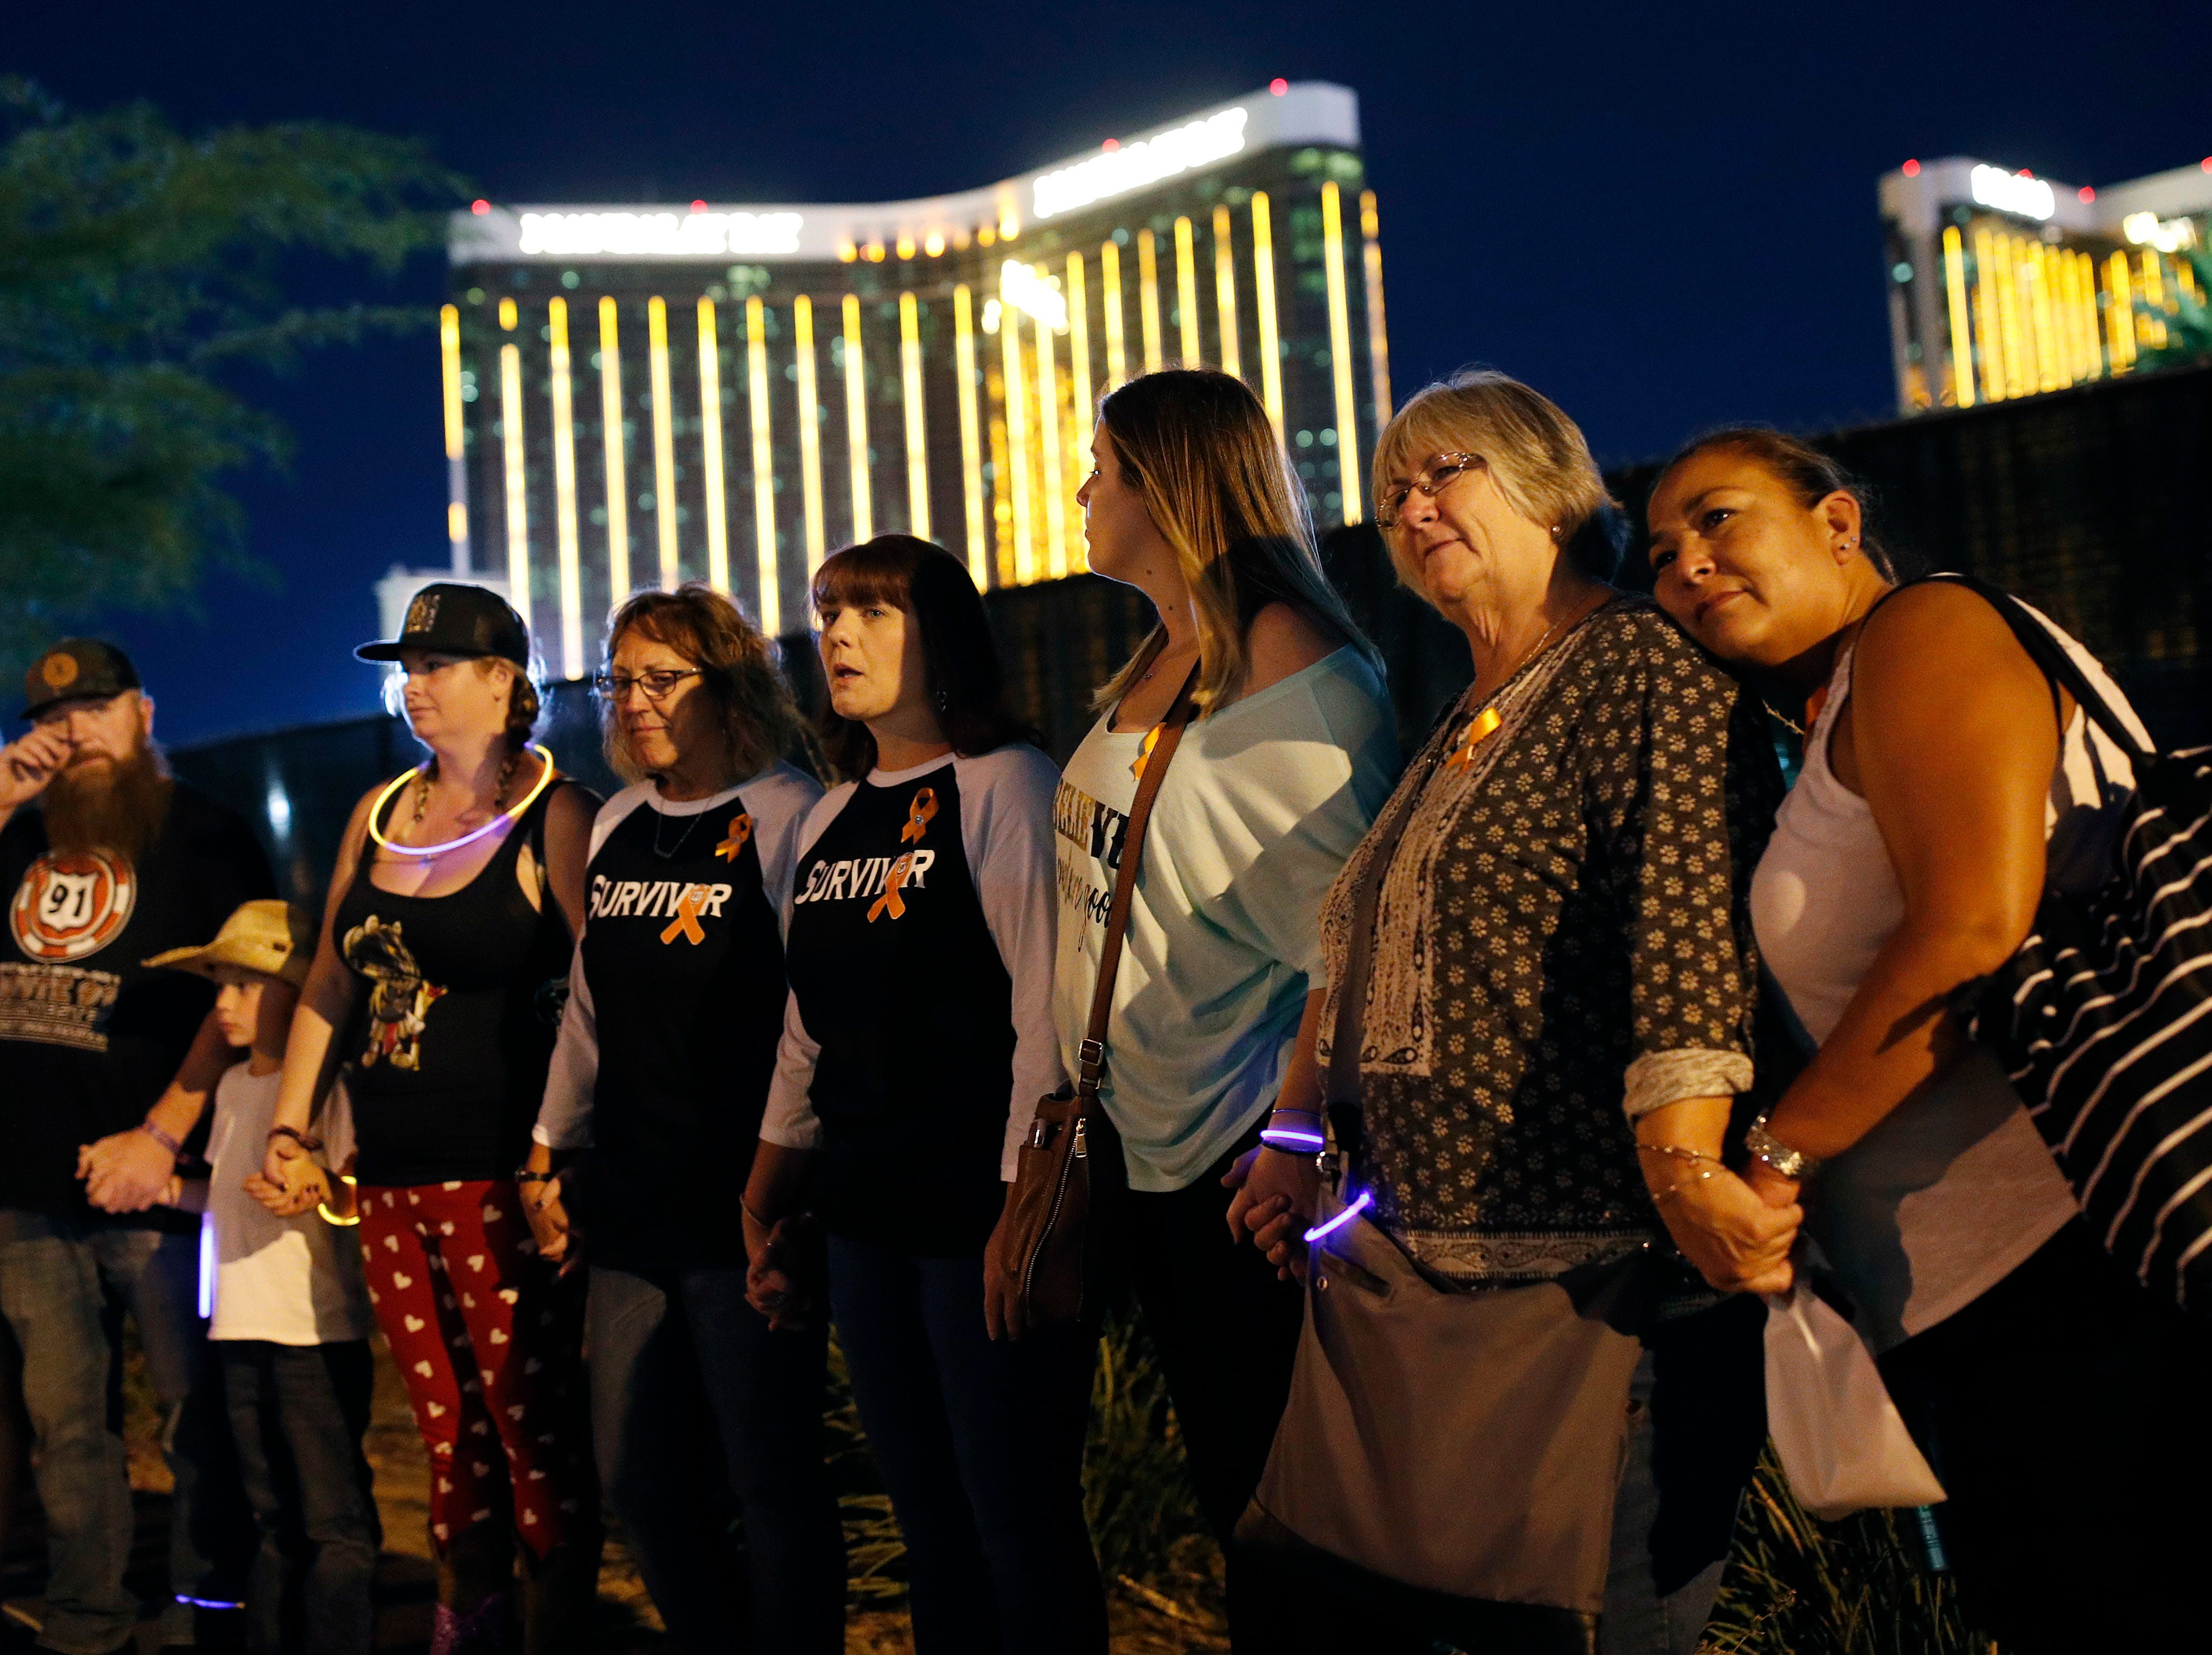 Survivors of the mass shooting a year ago form a human chain around the shuttered site of a country music festival on Monday, Oct. 1, 2018, in Las Vegas. As people were linking arms and holding hands Monday night near the concert site, officials and several hundred others across town listened to bagpipes and the names of the 58 victims being read aloud.